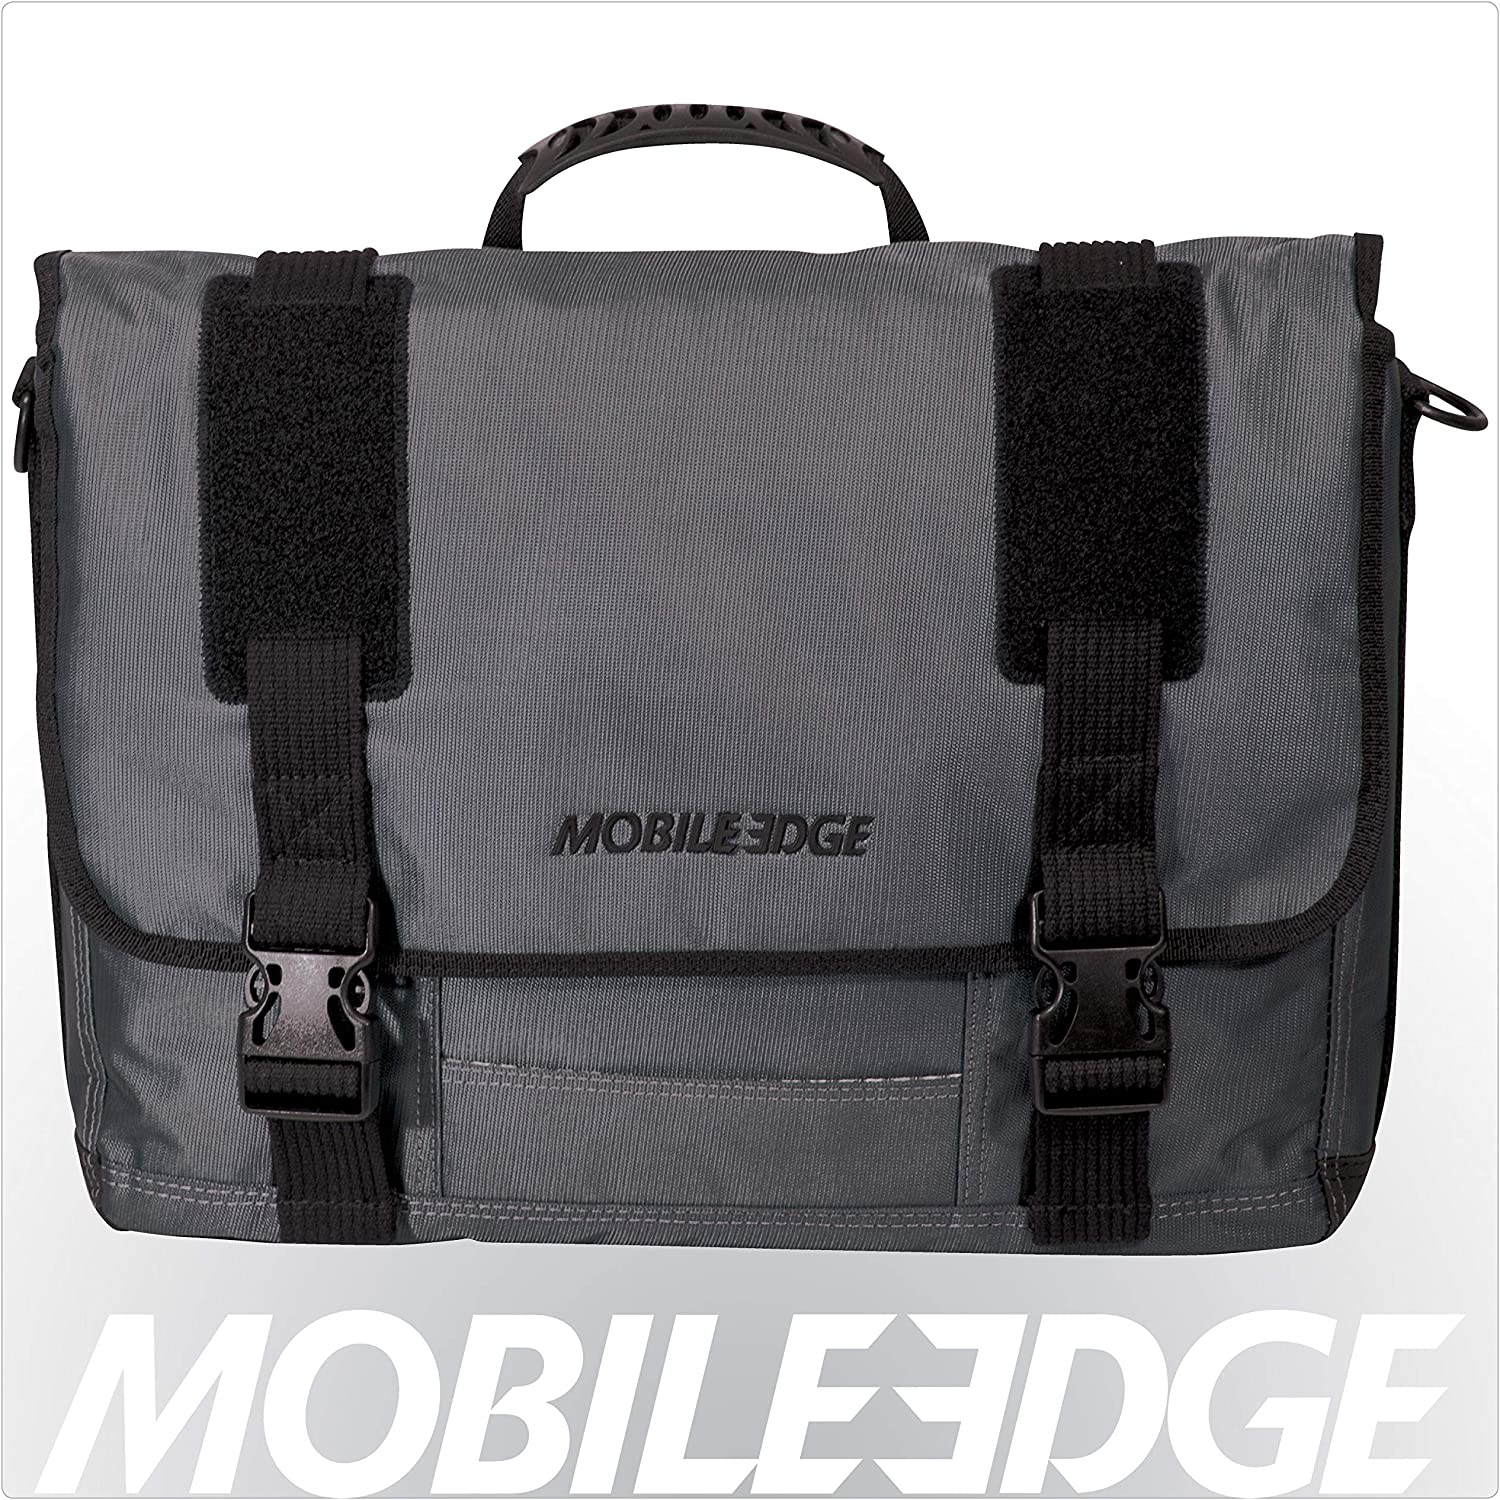 Mobile Edge Graphite Series Laptop Messenger, 17.3 Inch Premium Exterior Material, Dedicated Padded Computer Compartment, Graphite, for Men, Women, Business, Students MEGME